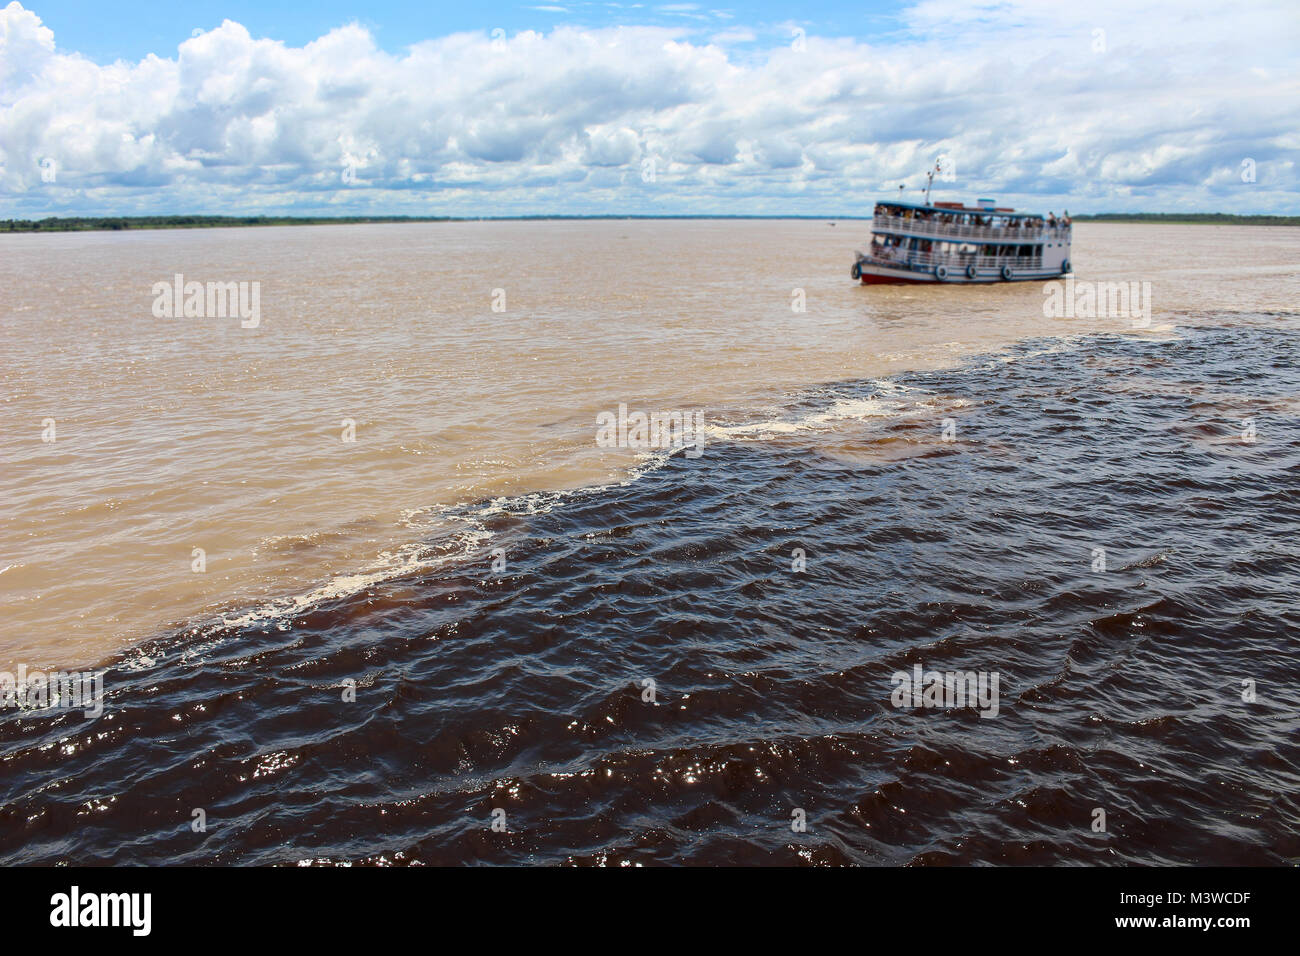 Meeting of the Waters of Rio Negro and the Amazon River or Rio Solimoes near Manaus, Amazonas, Brazil in South America - Stock Image